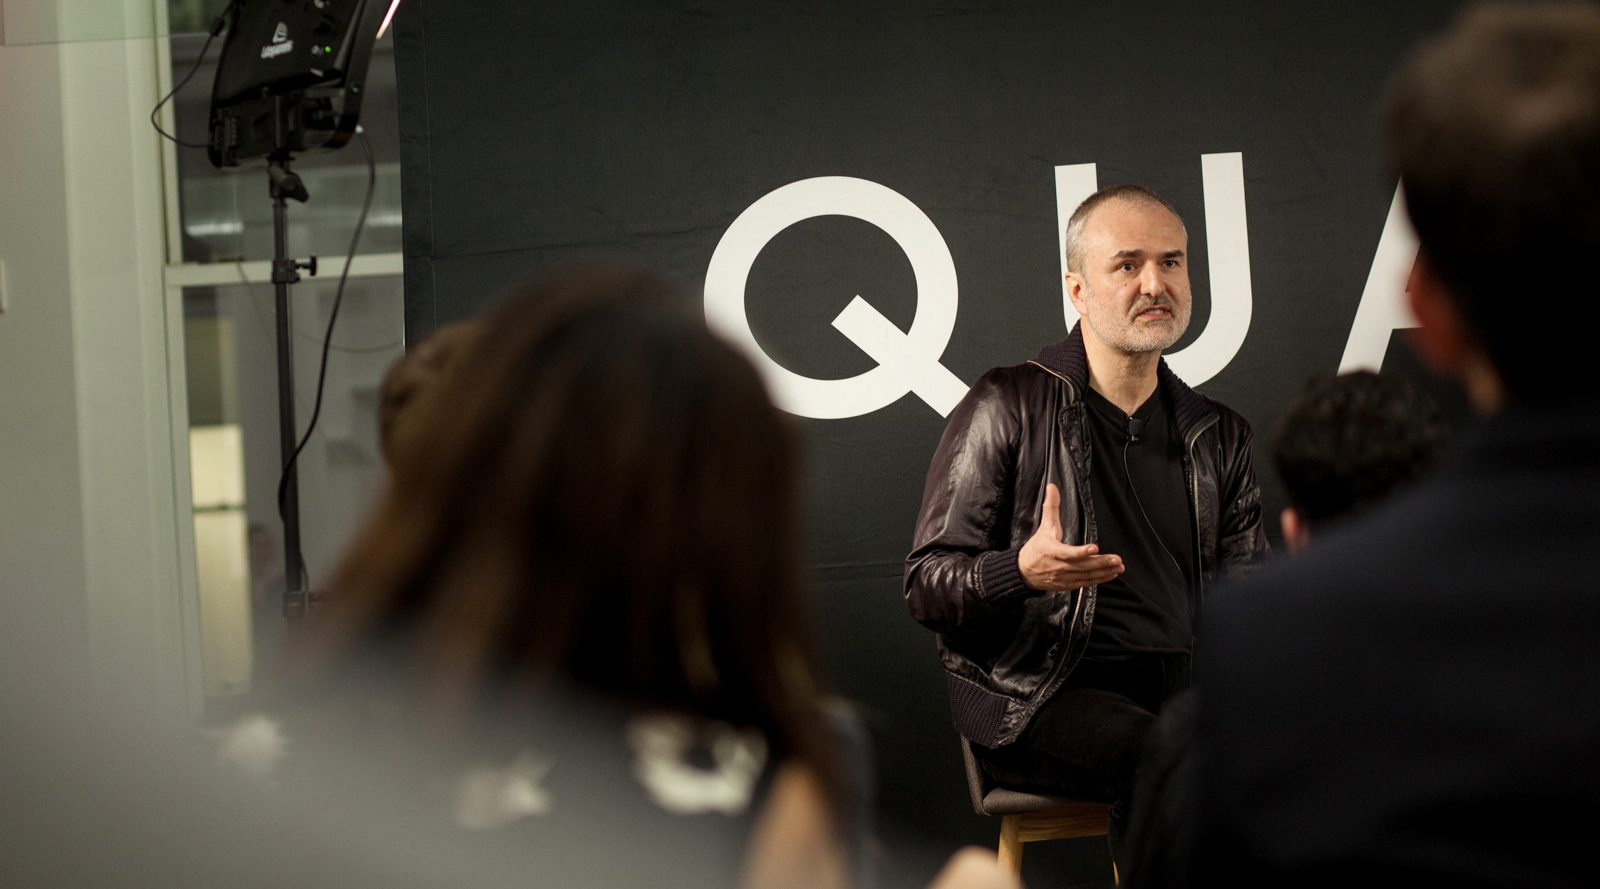 Gawker Media founder Nick Denton participates in a fireside chat with Quartz editor in chief Kevin Delaney at Quartz's New York headquarters.